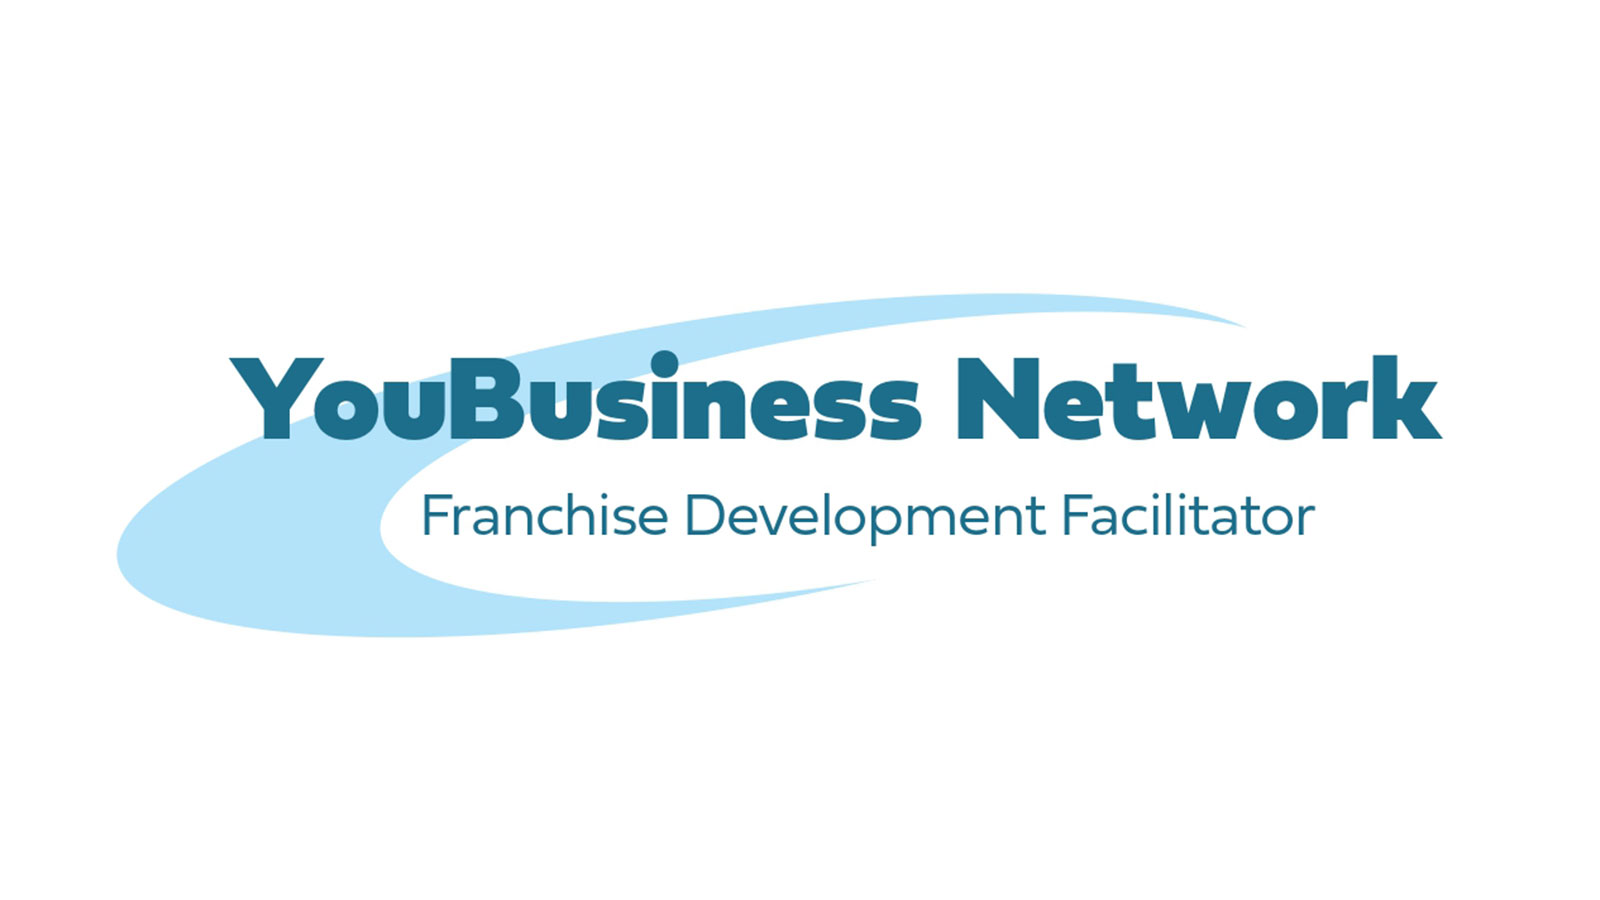 Youbusiness Network